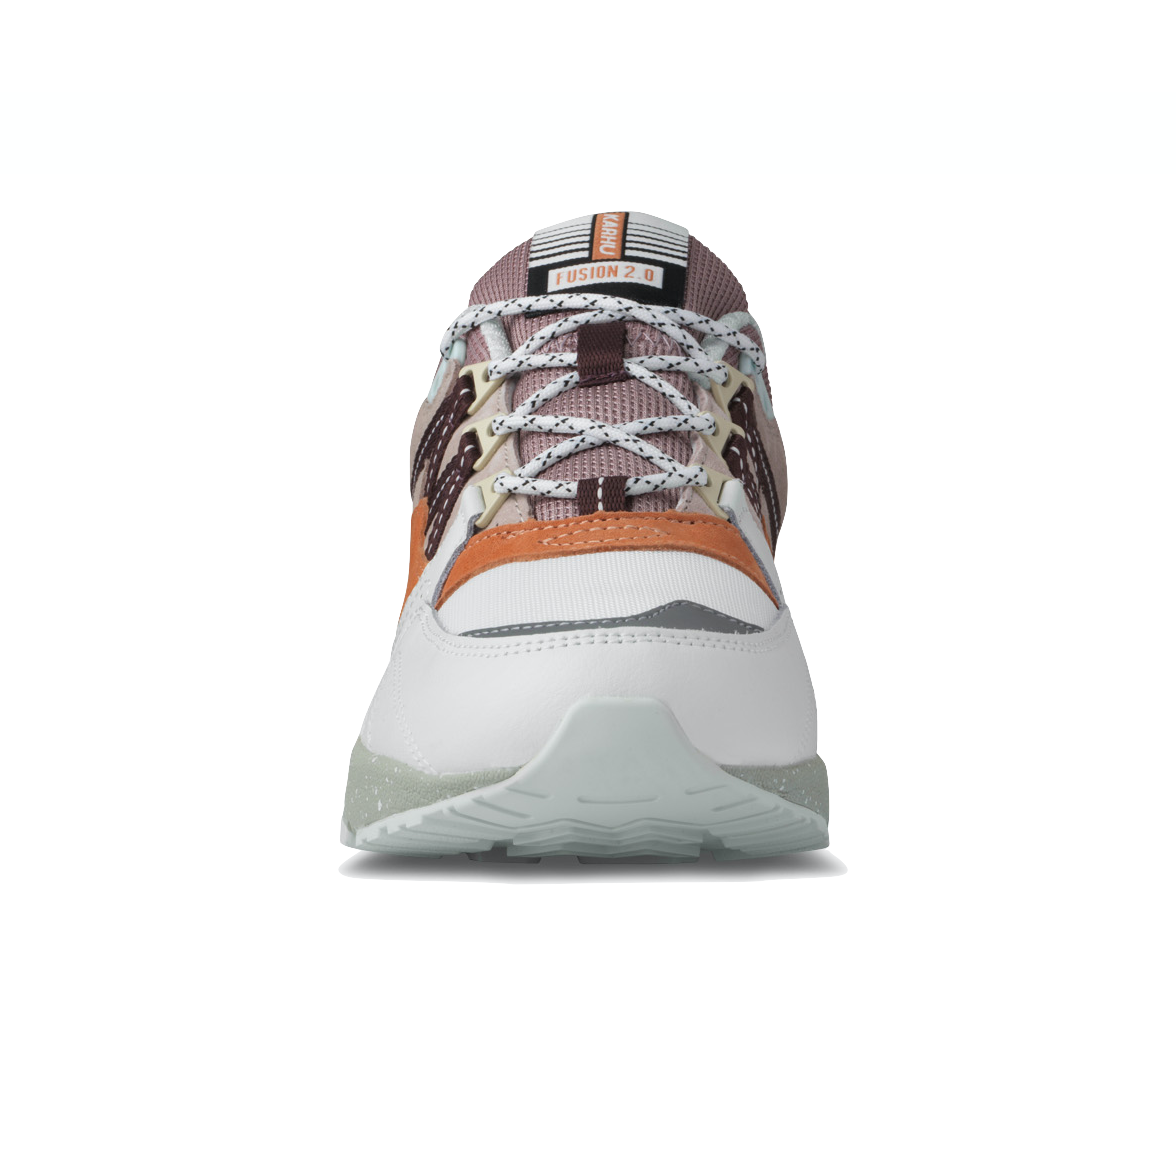 karhu-fusion-2-0-speckled-pack-bright-white-pheasant-front